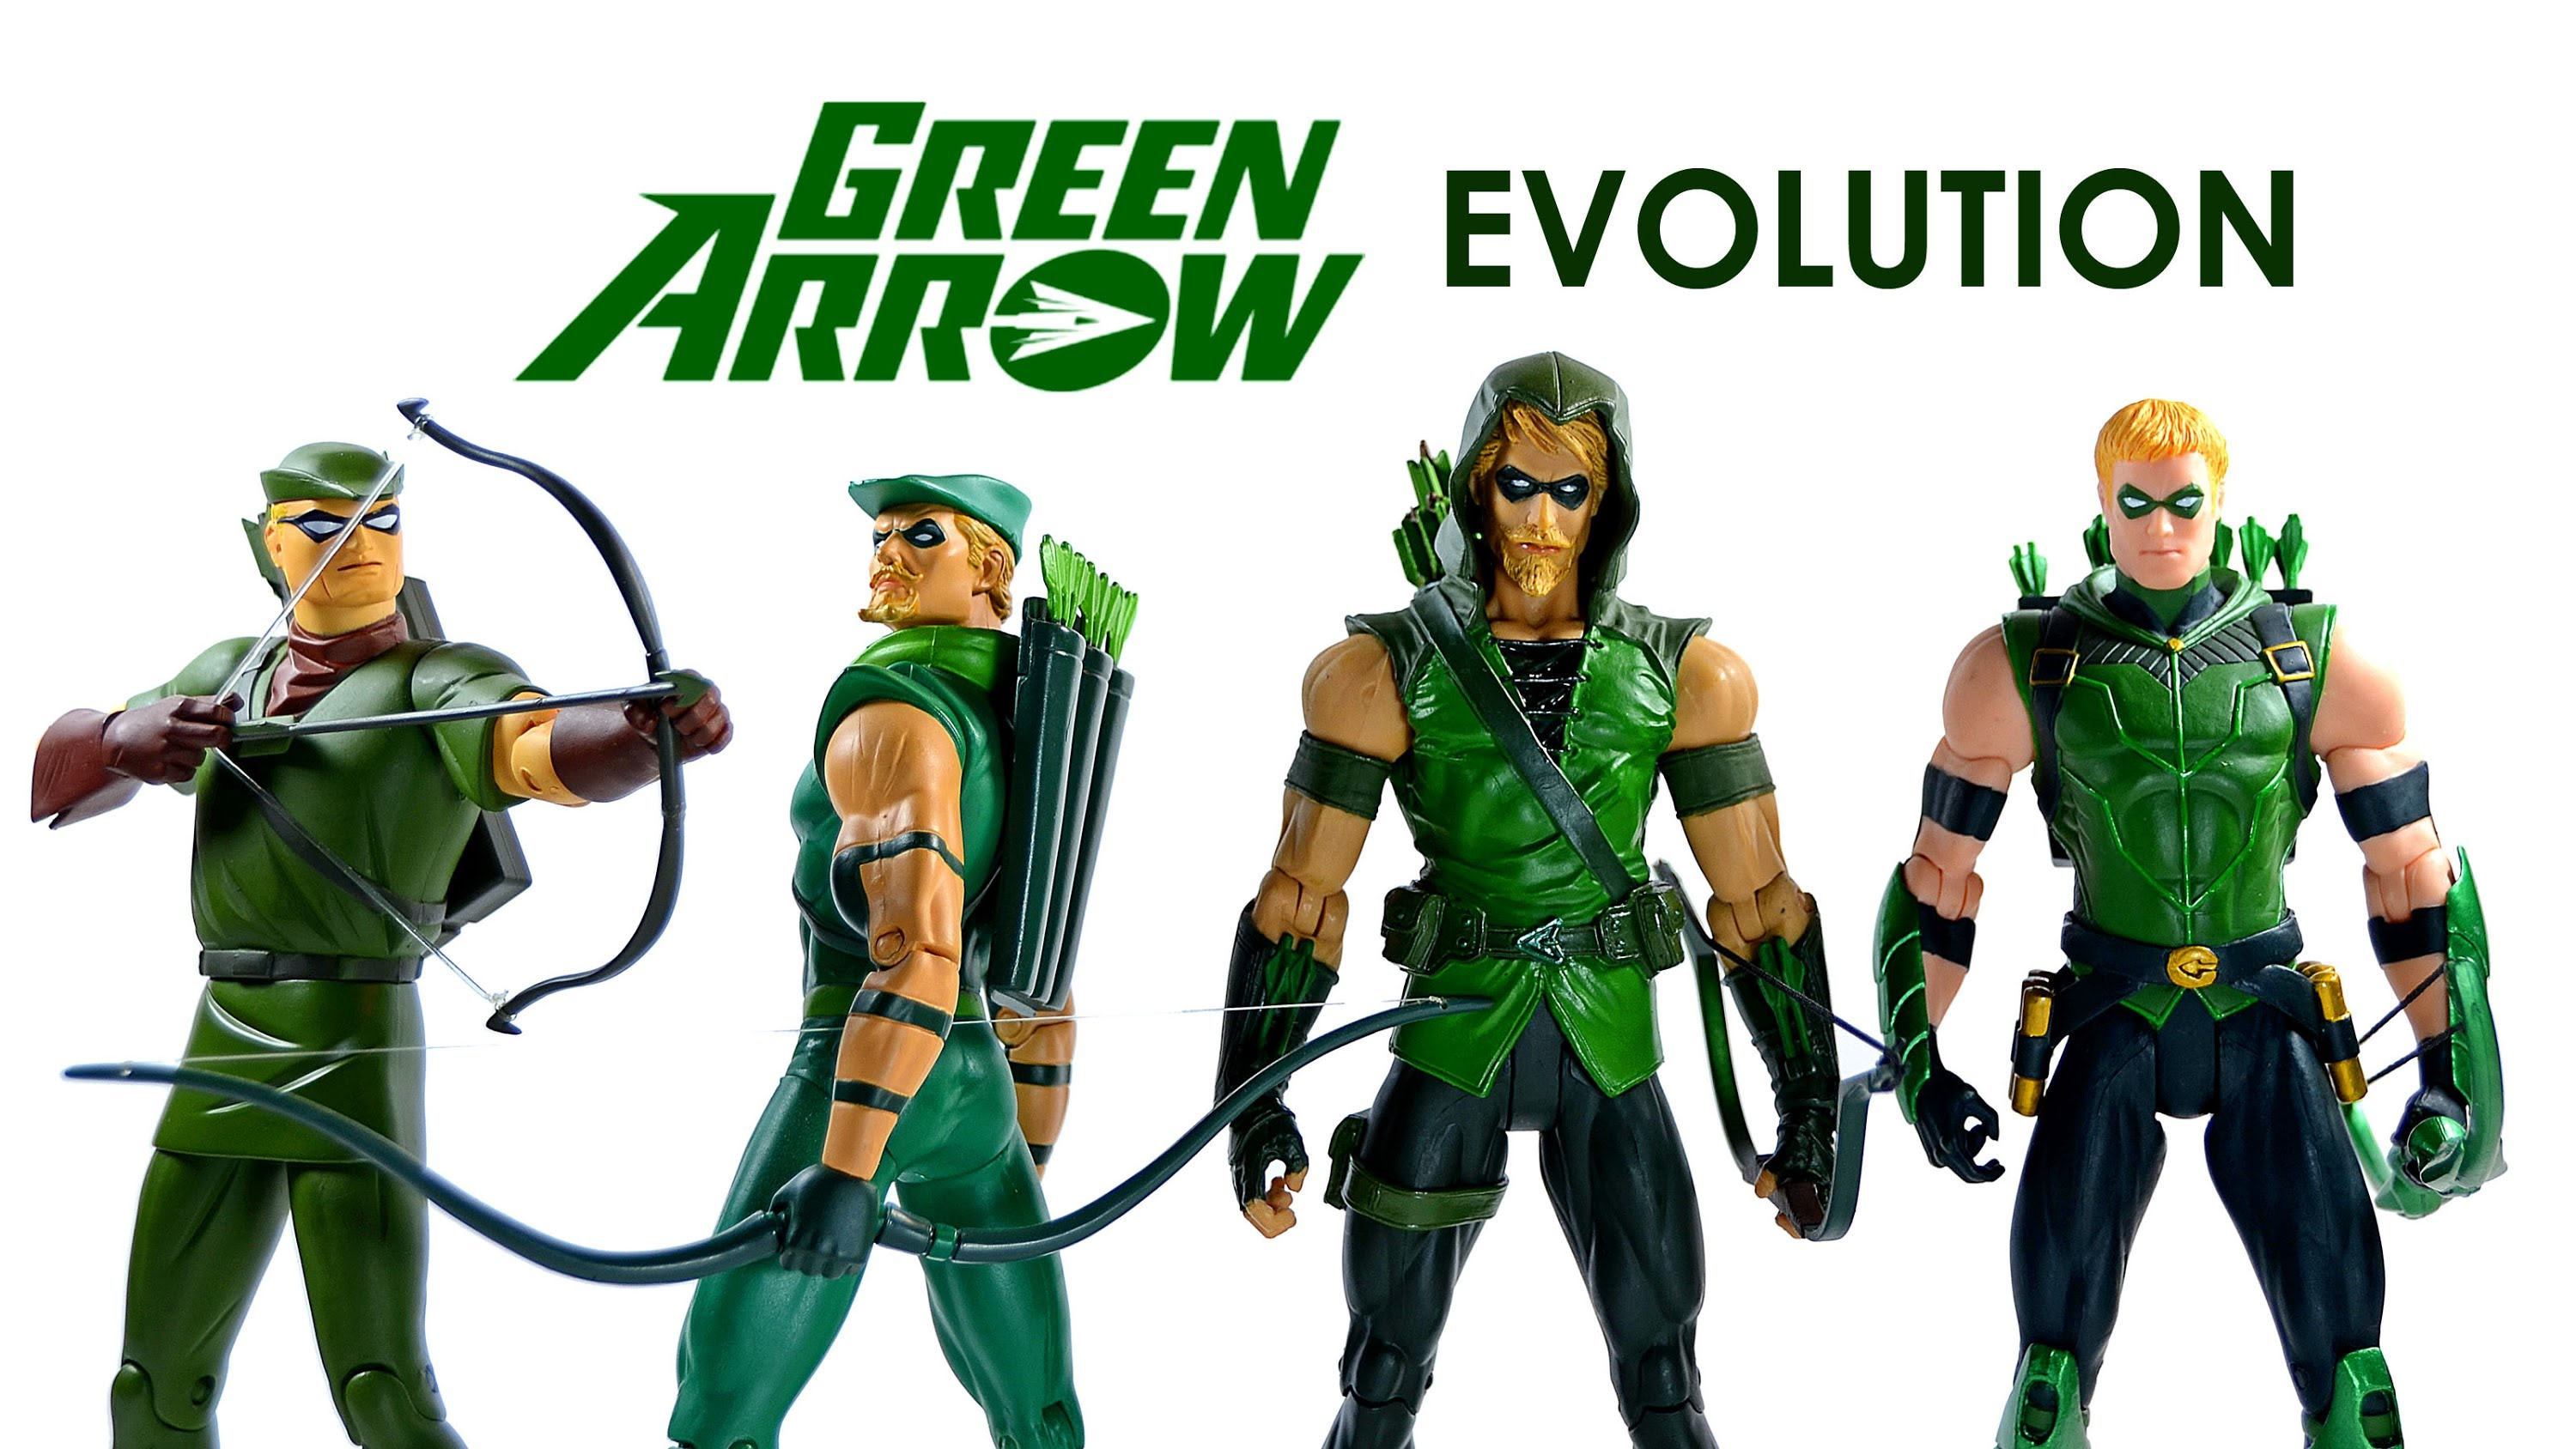 Picture Of Green Arrow.